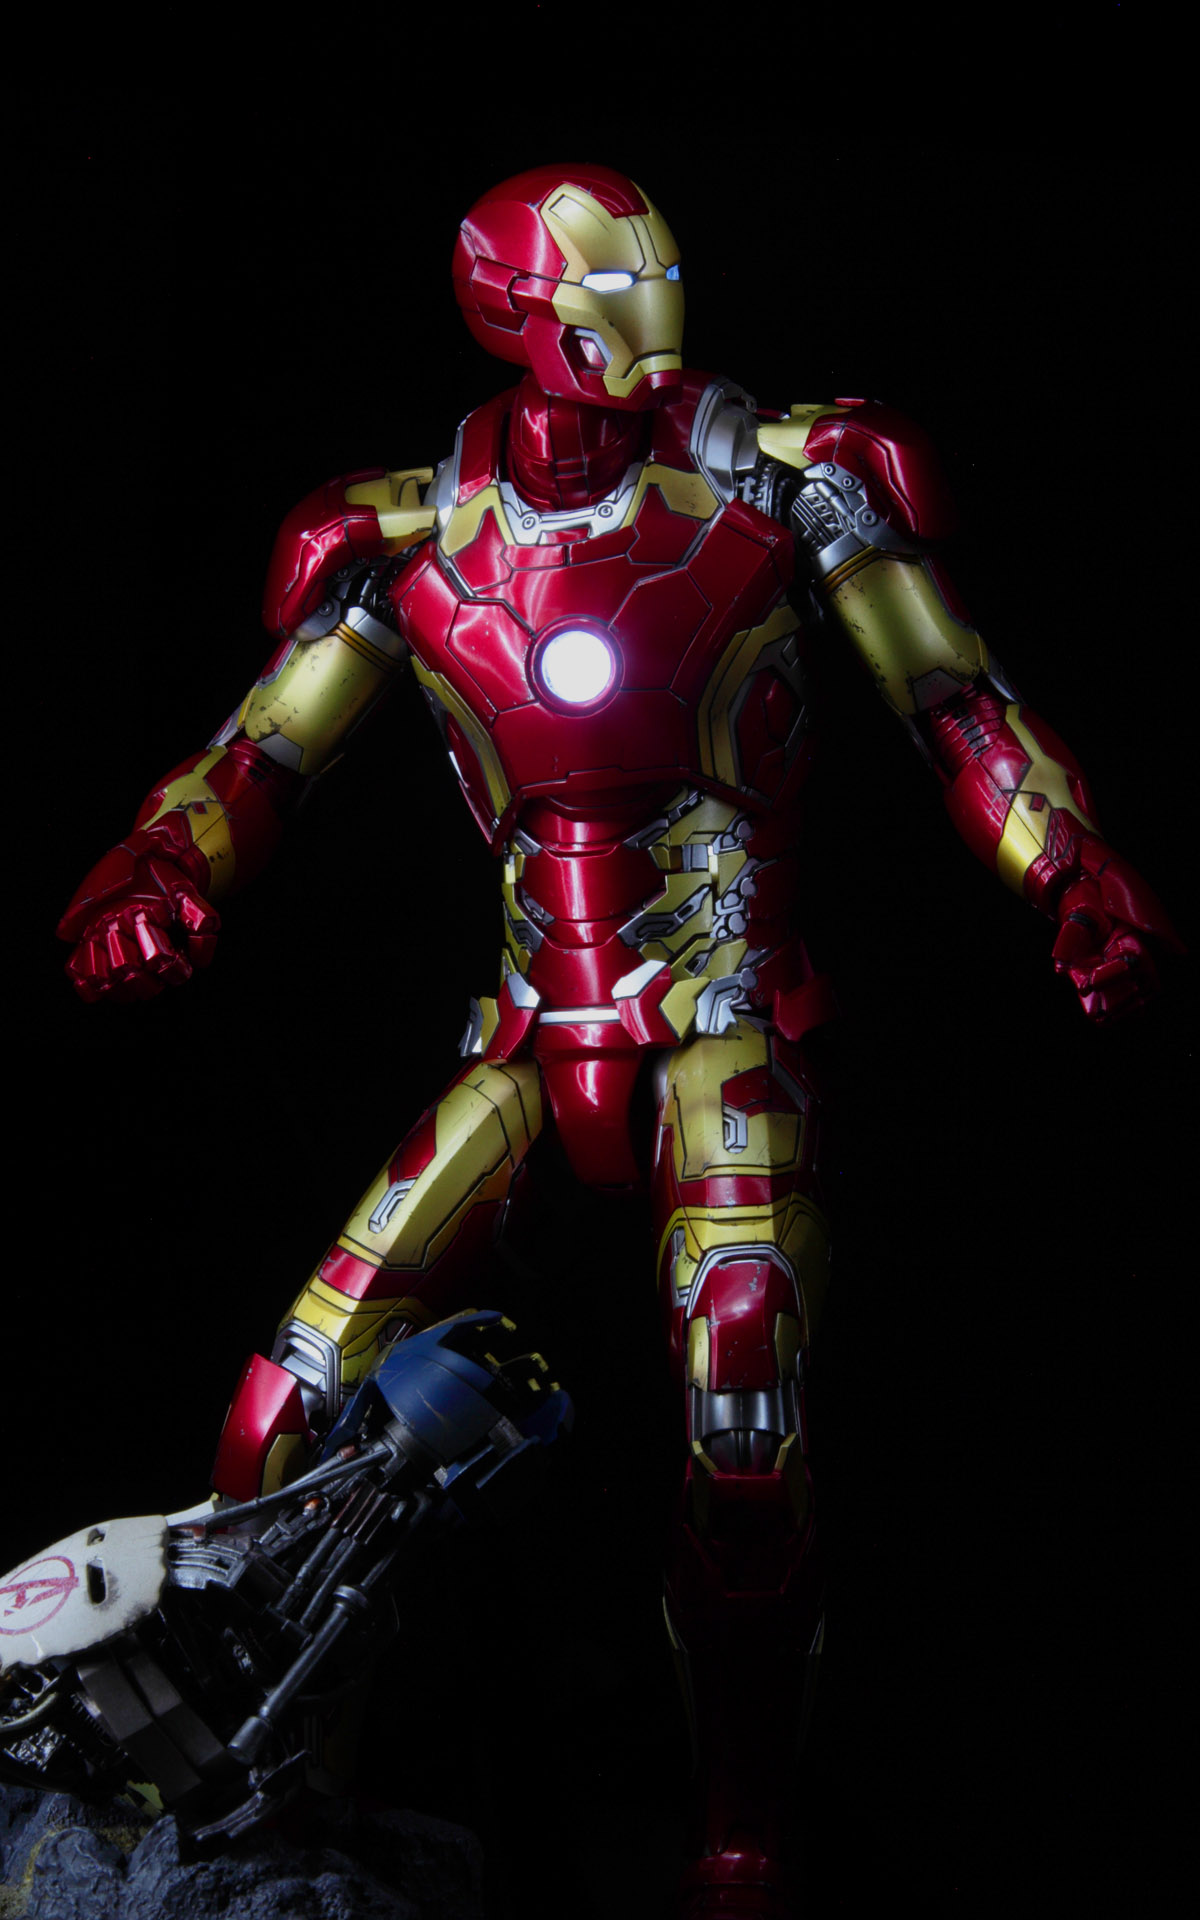 hottoys-avengers-age-of-ultron-iron-man-mark-43-picture03